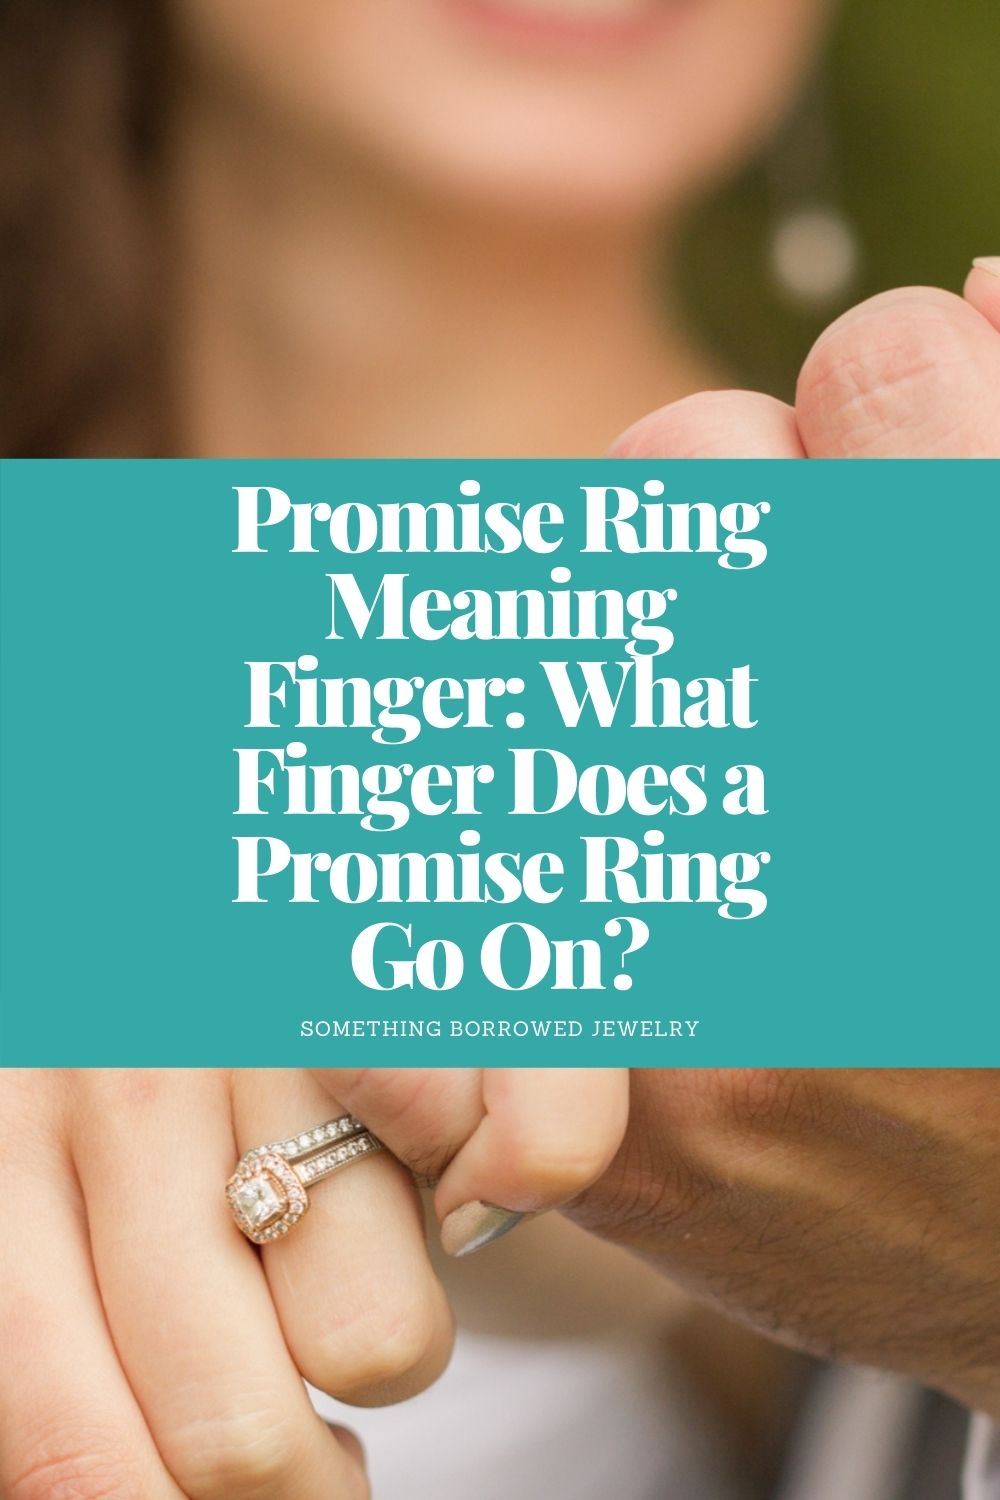 Promise Ring Meaning Finger What Finger Does a Promise Ring Go On pin